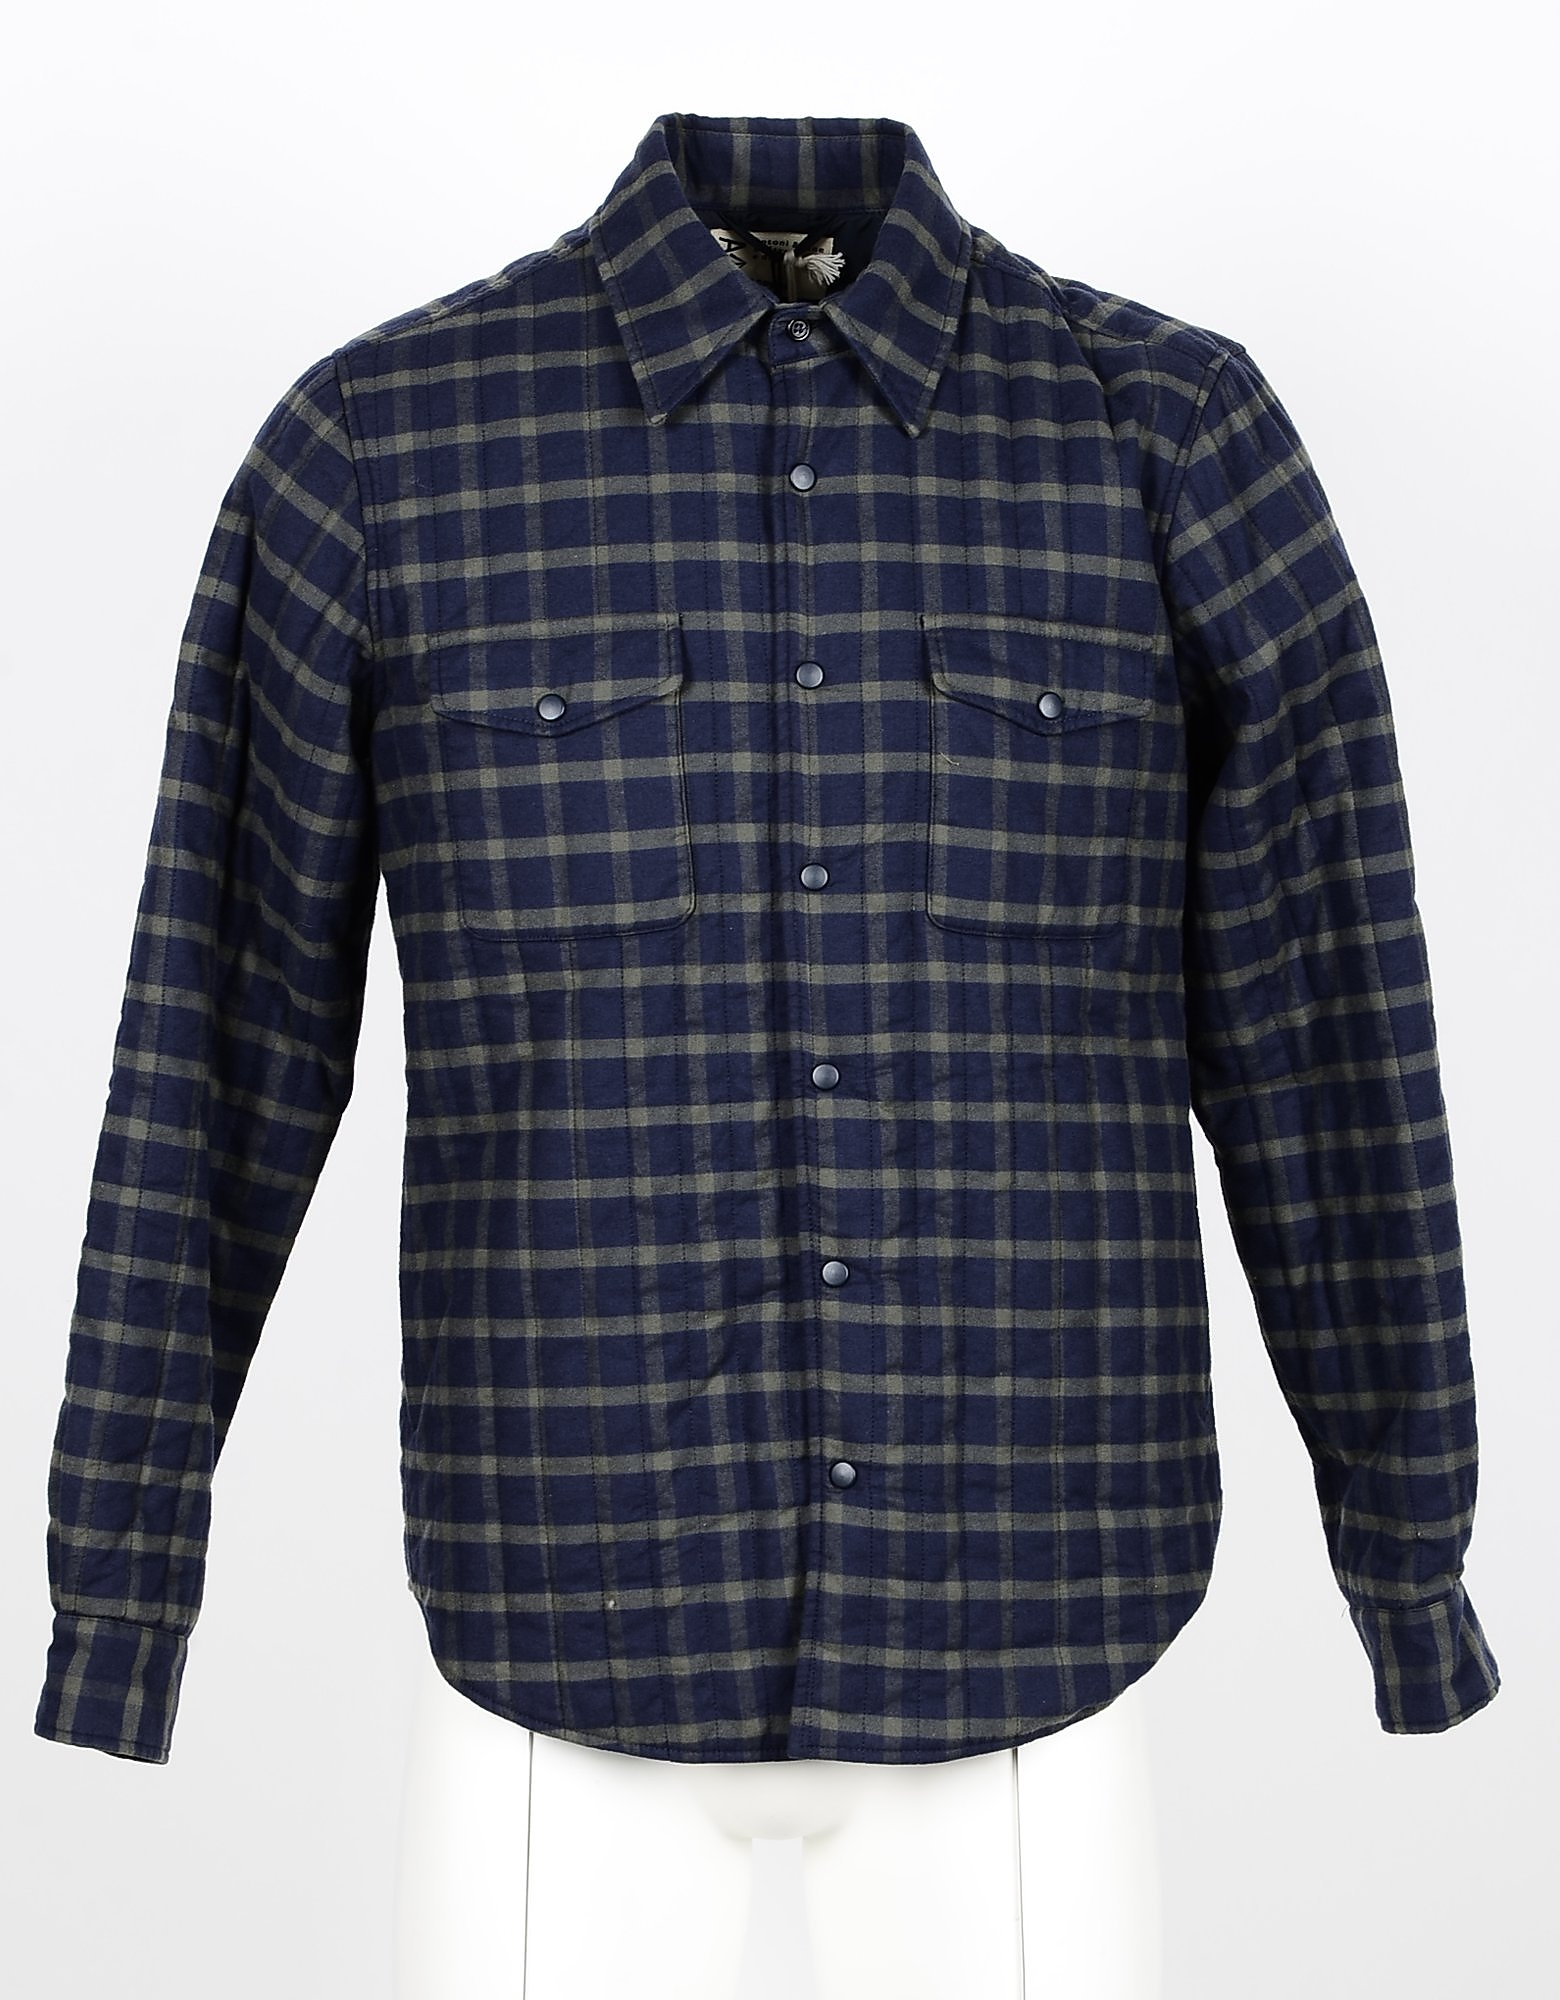 Aspesi Designer Shirts, Blue/Green Checked Cotton Men's Shirt